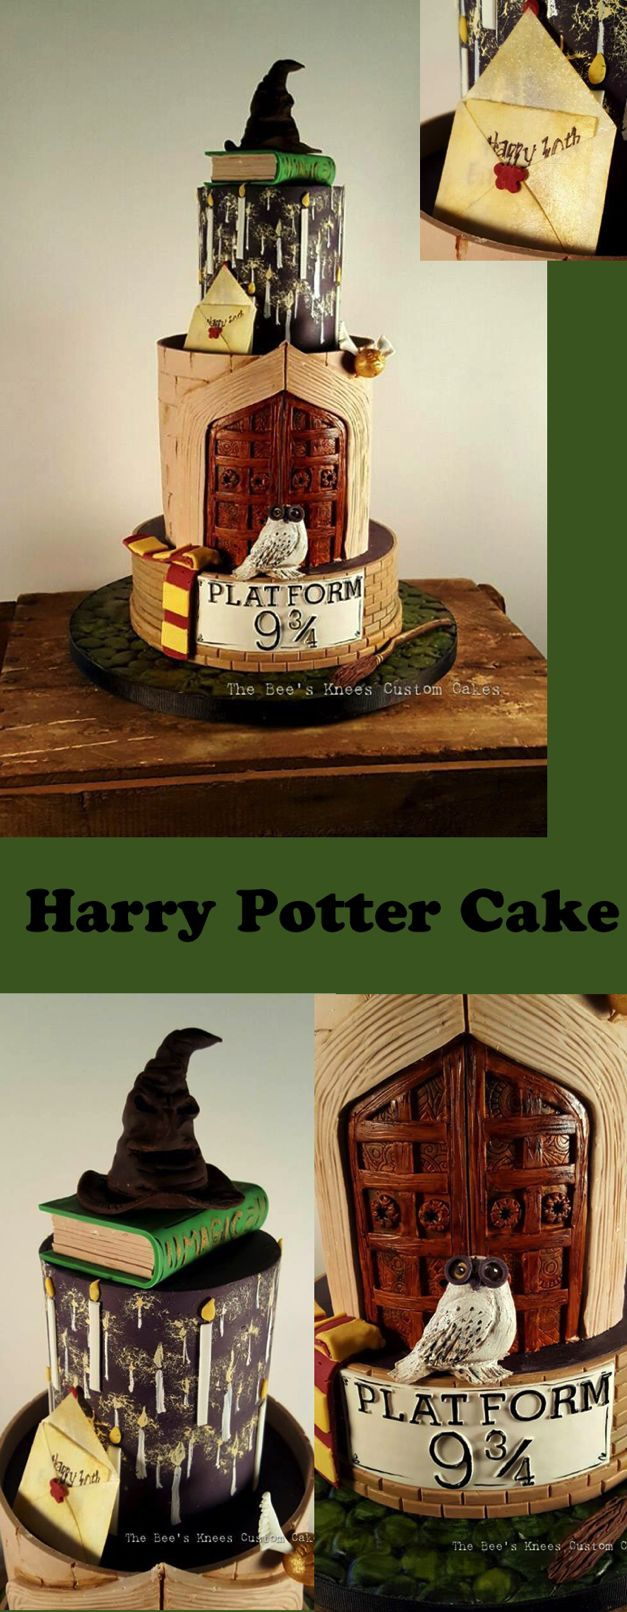 Harry Potter 10th Birthday Cake made by The Bee's Knees Custom Cakes